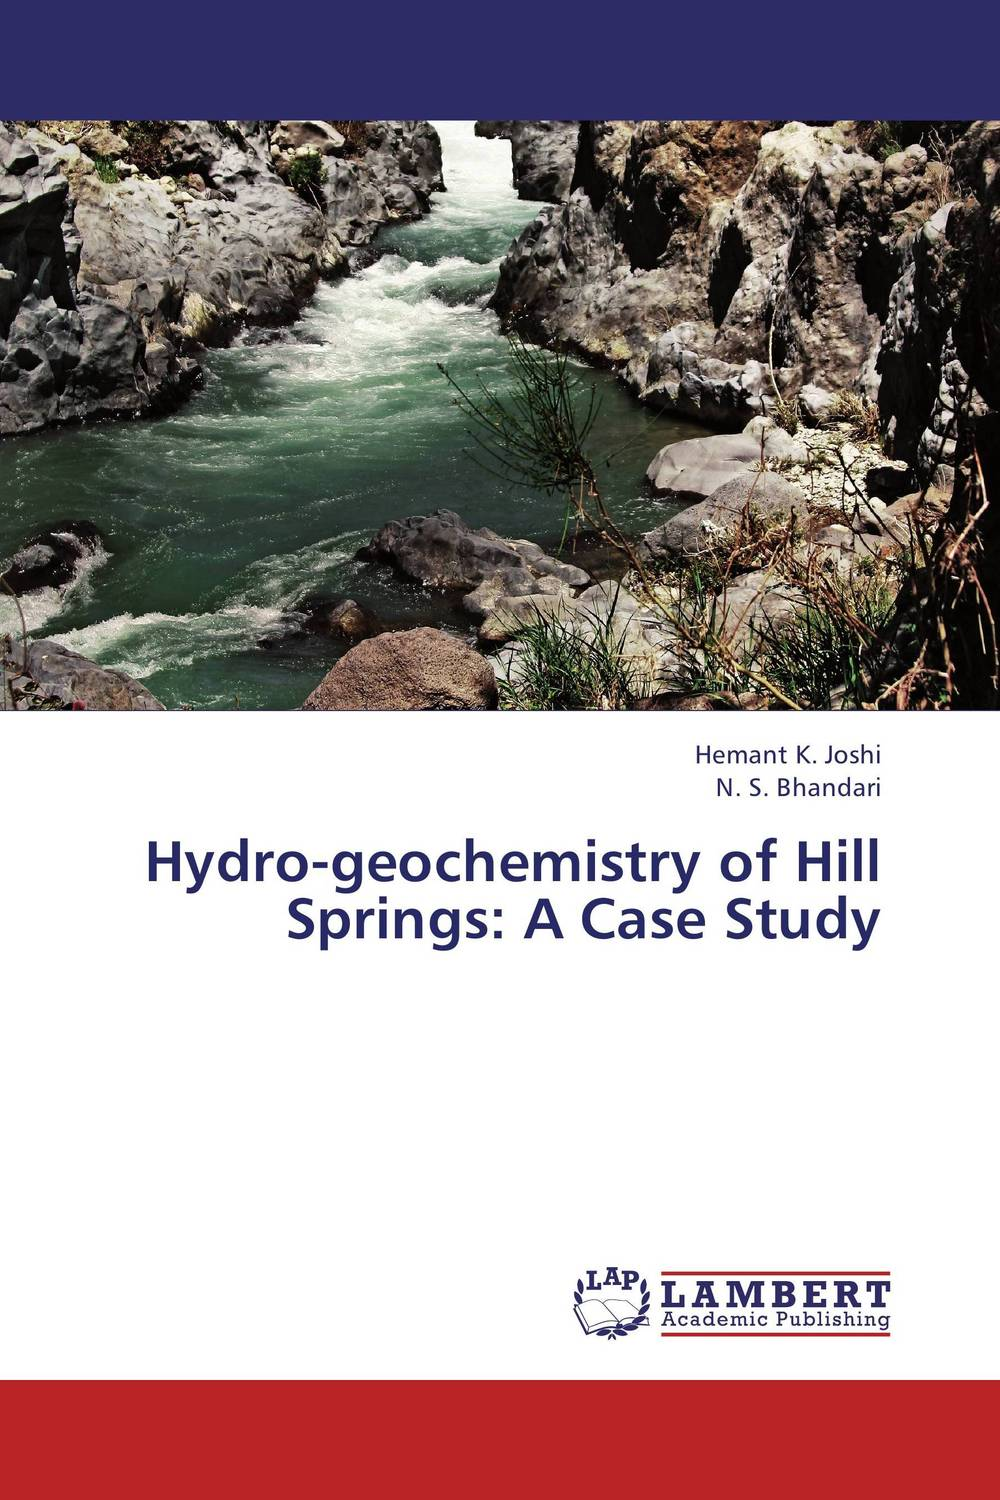 Hydro-geochemistry of Hill Springs: A Case Study optimization of hydro generation scheduling